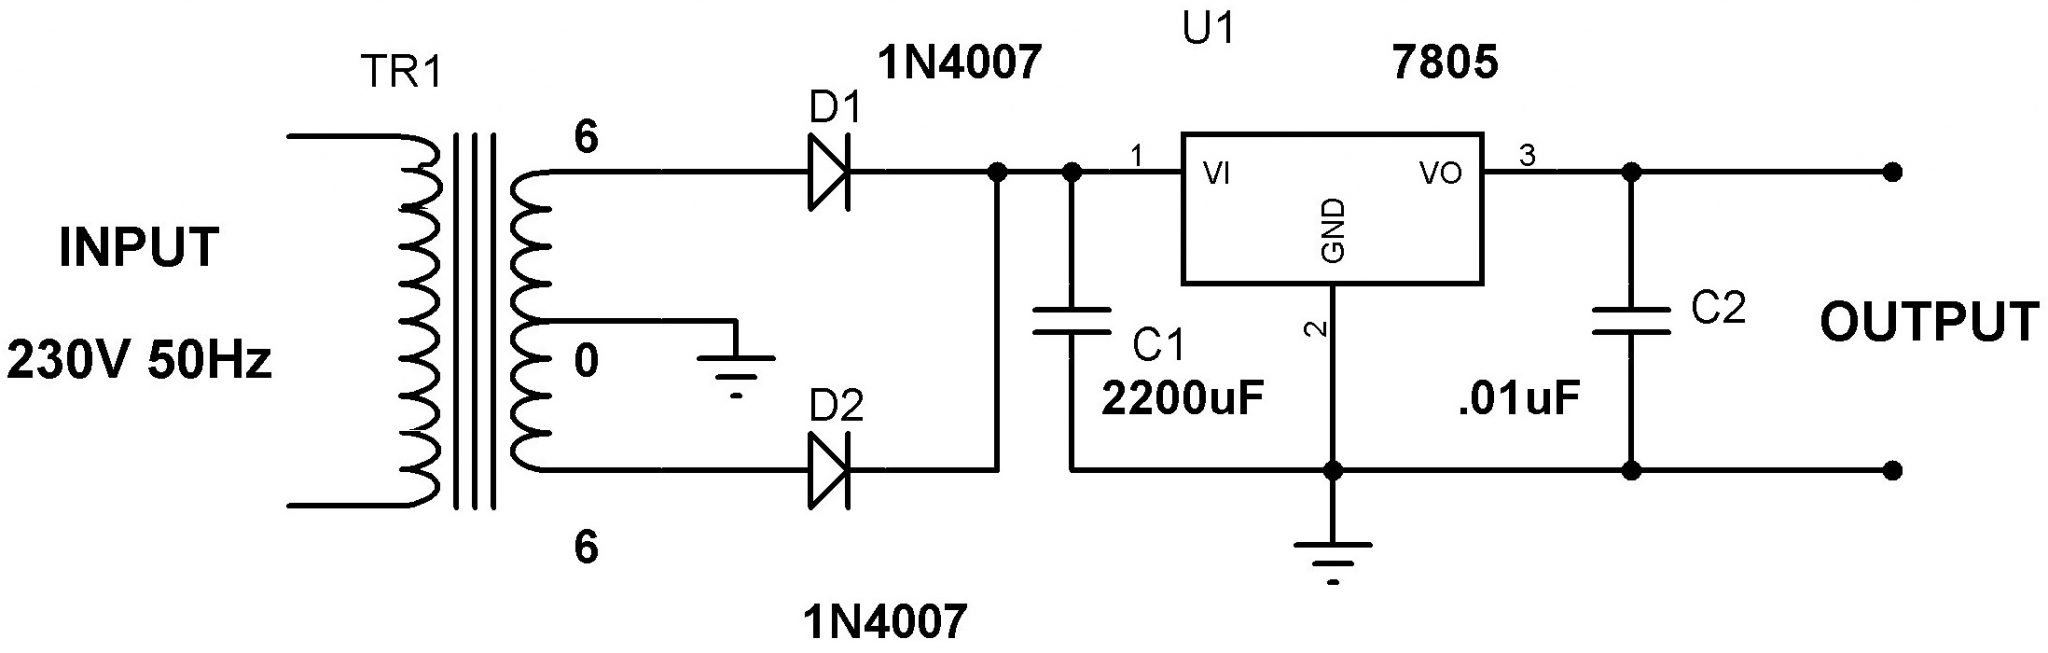 5v power supply using 7805 voltage regulator with design